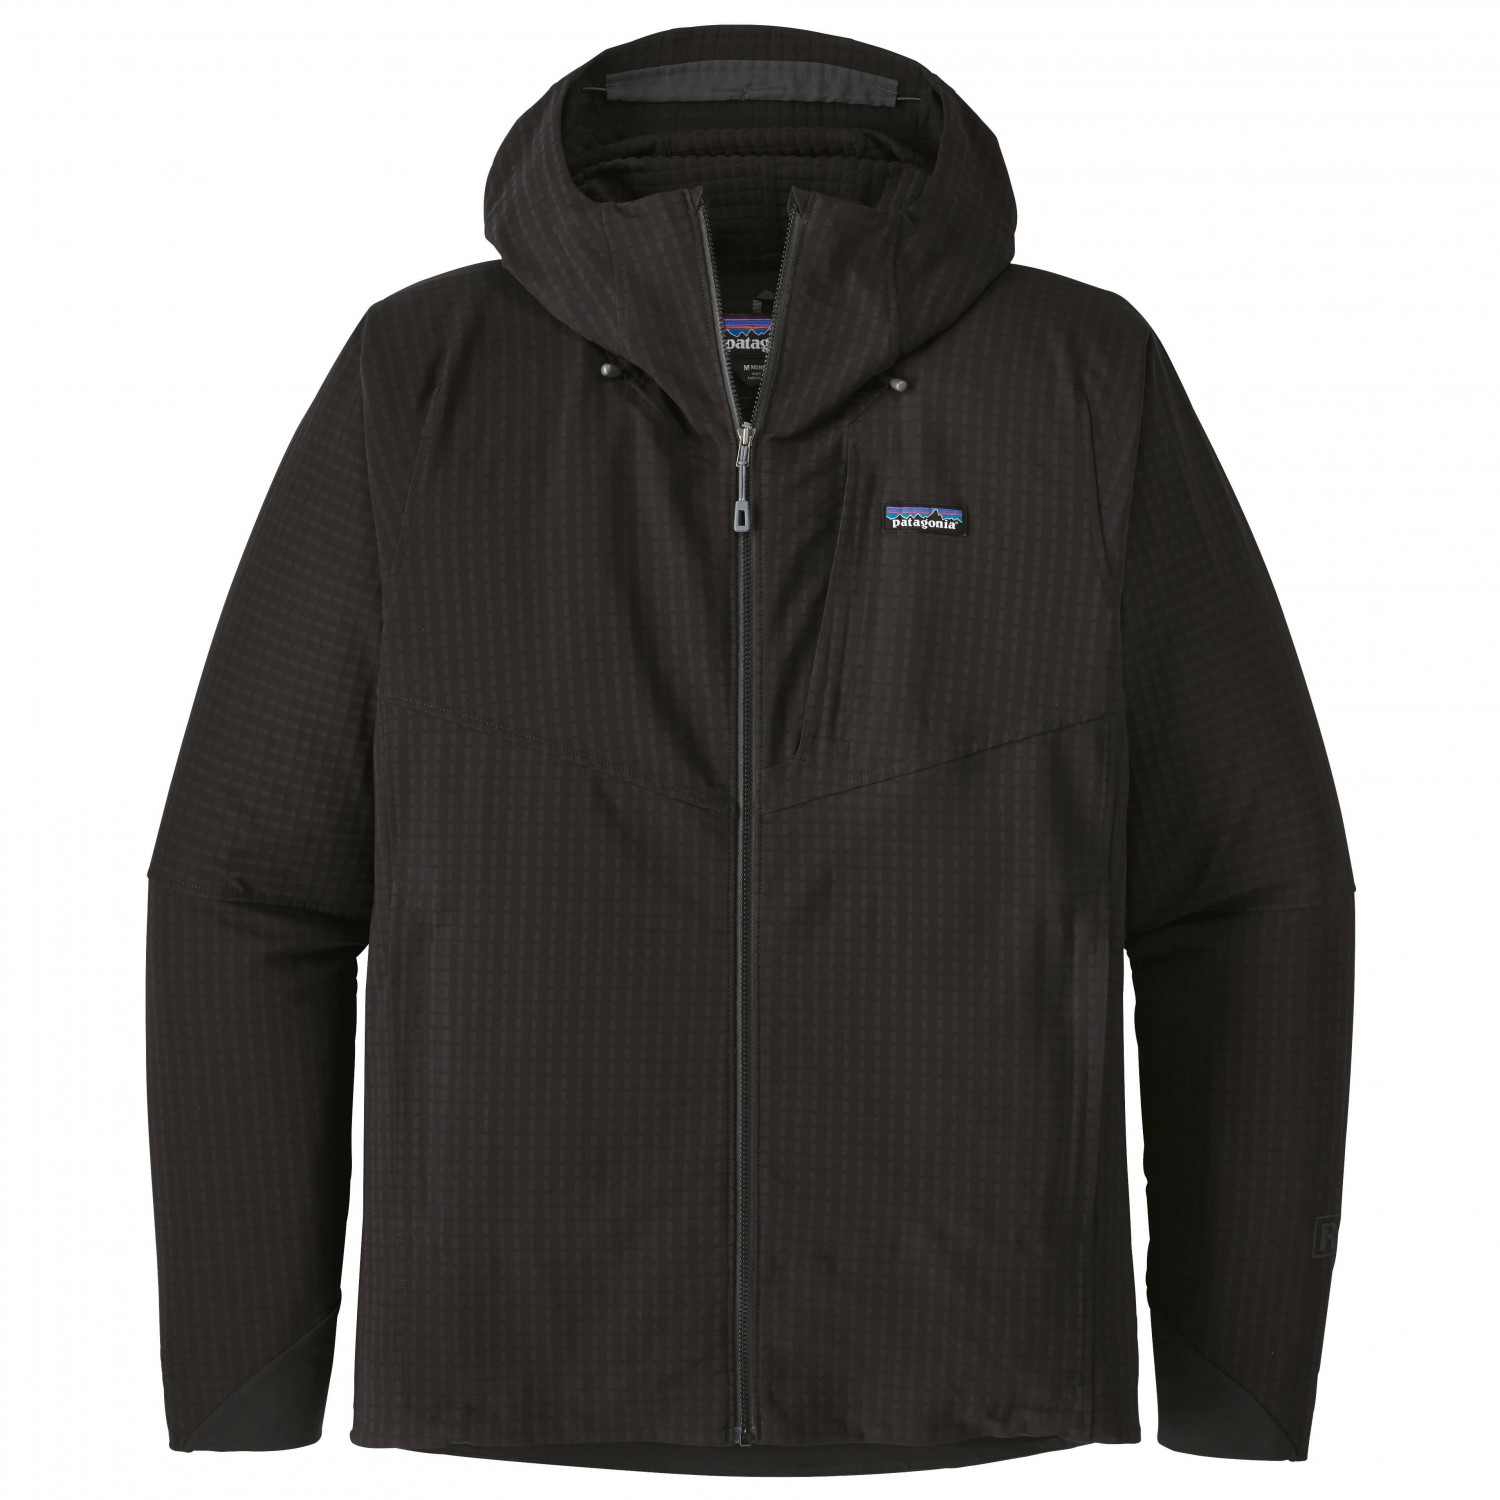 Watch Patagonia R1 TechFace Hoody Review: The best hoodie for spring video